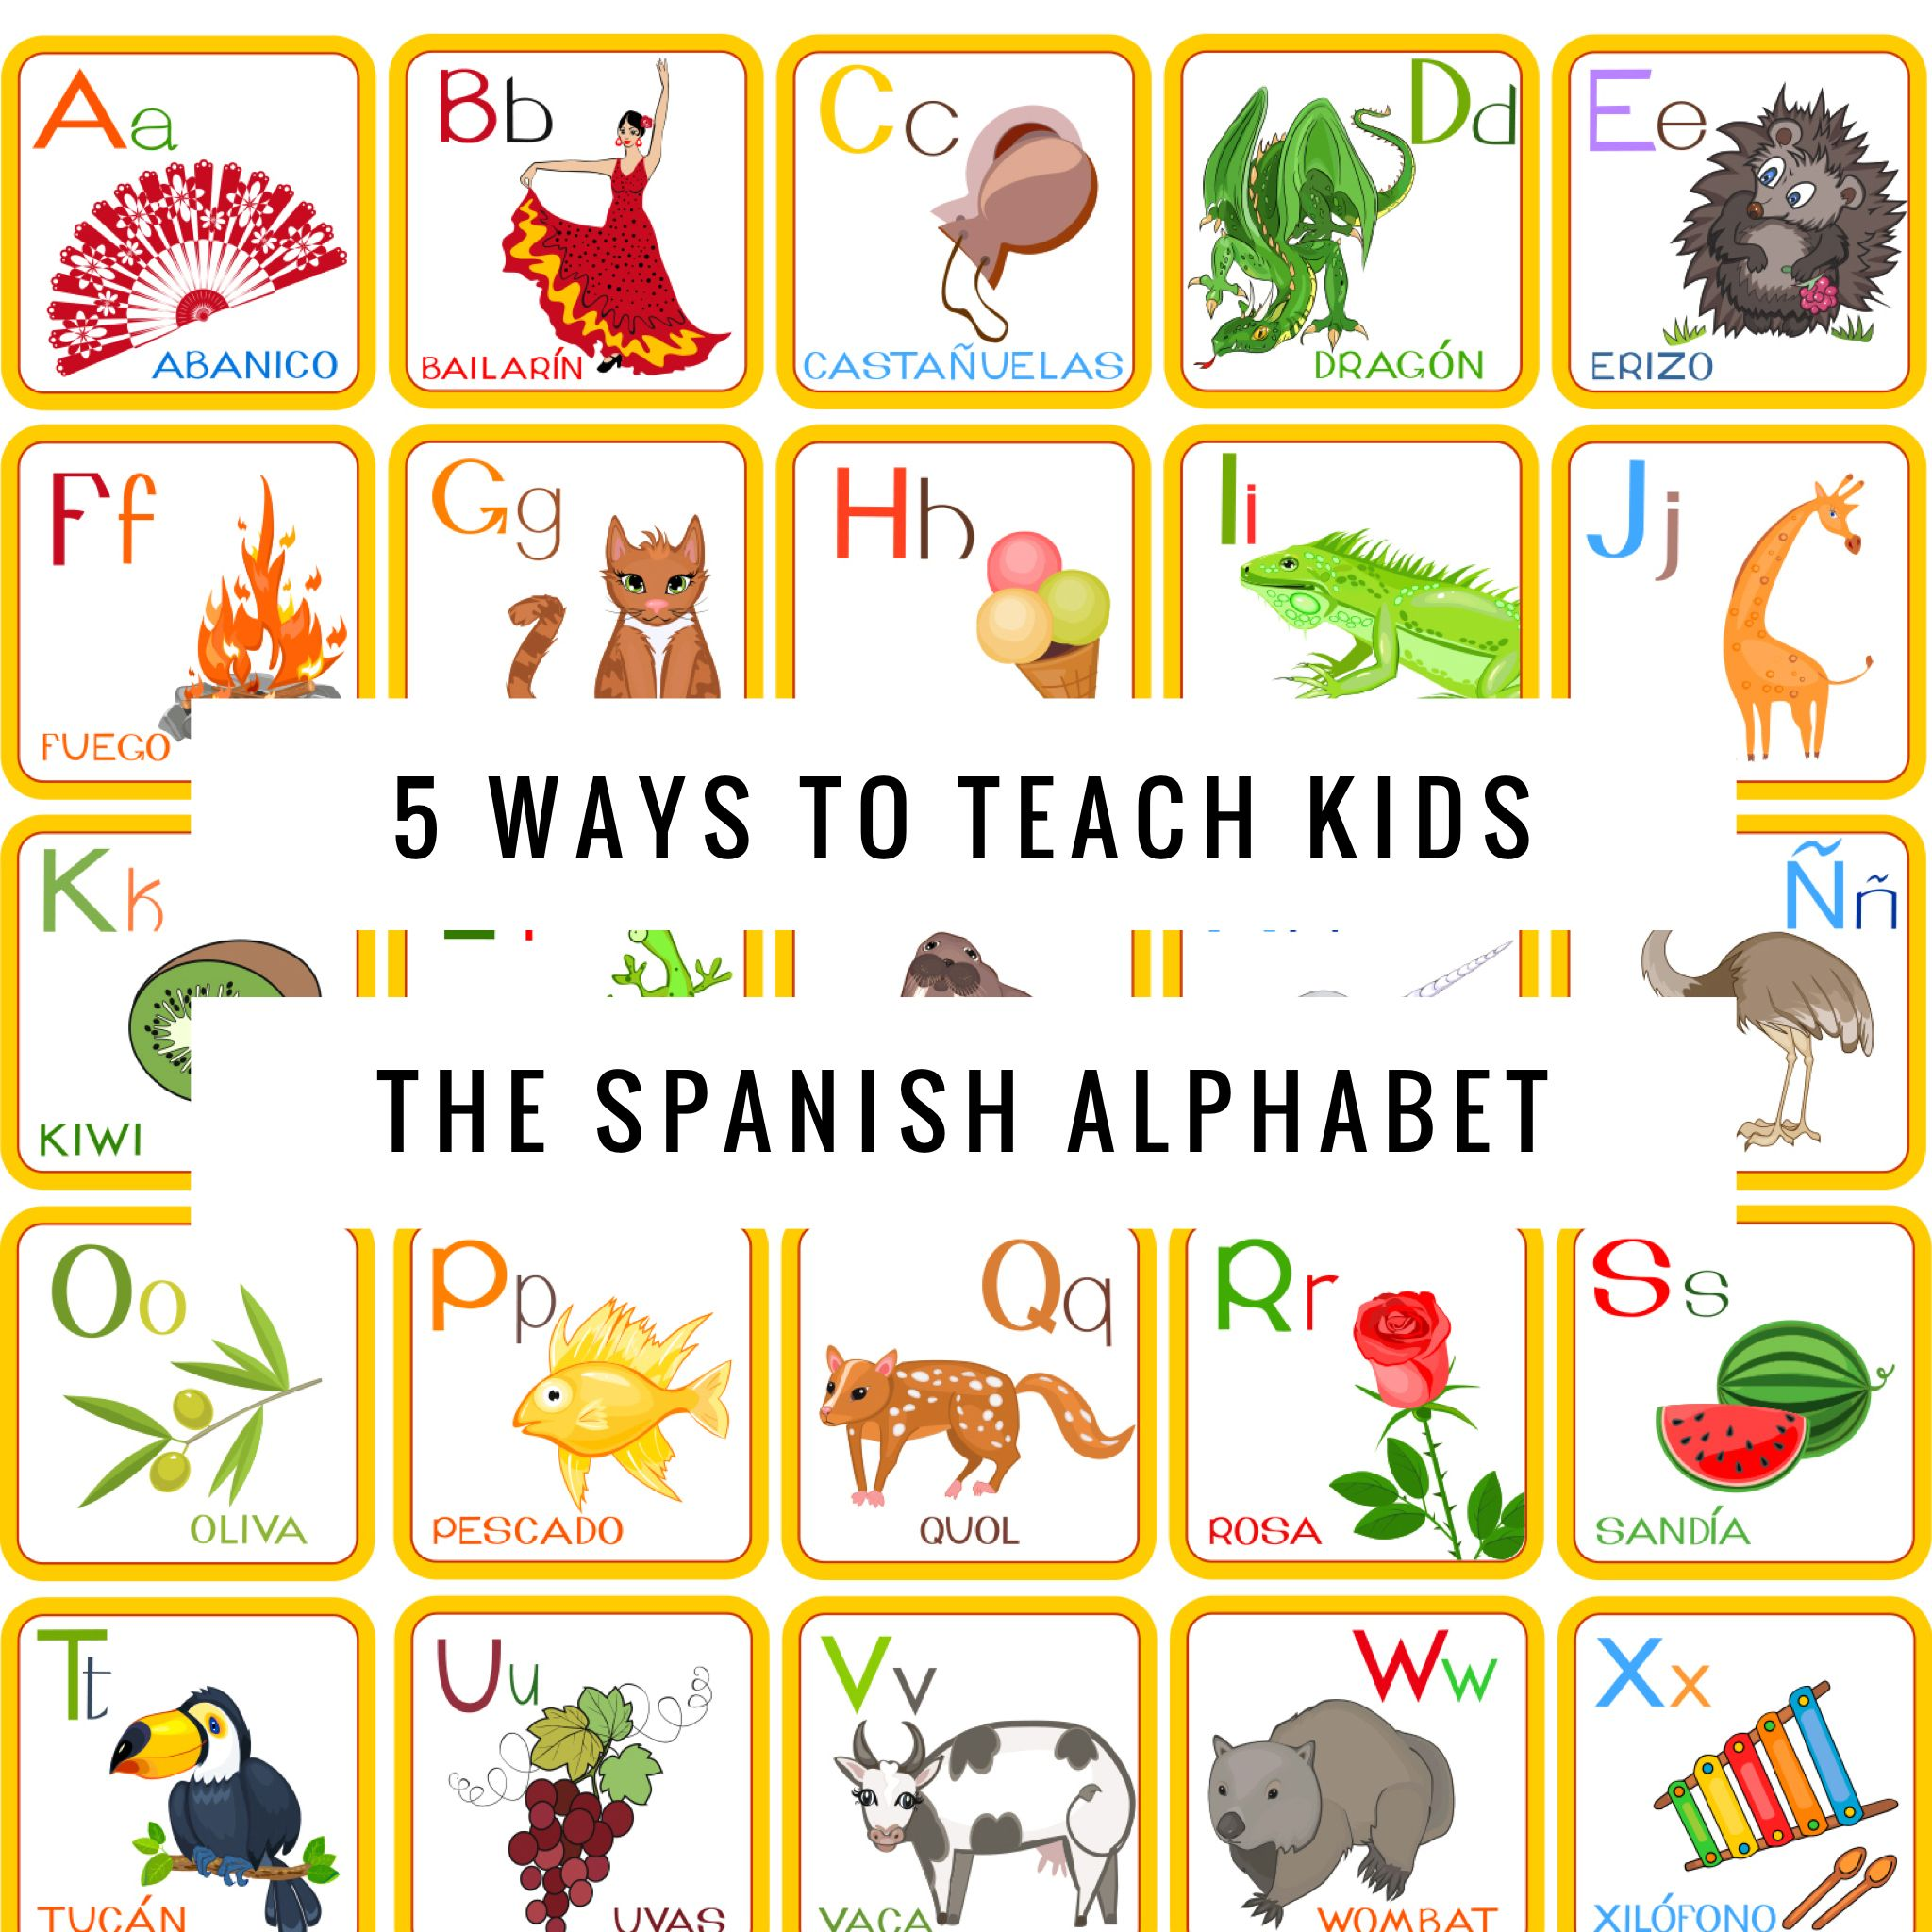 Pin By A Bountiful Love On Spanish Spanish Alphabet Learning Spanish For Kids Spanish Kids